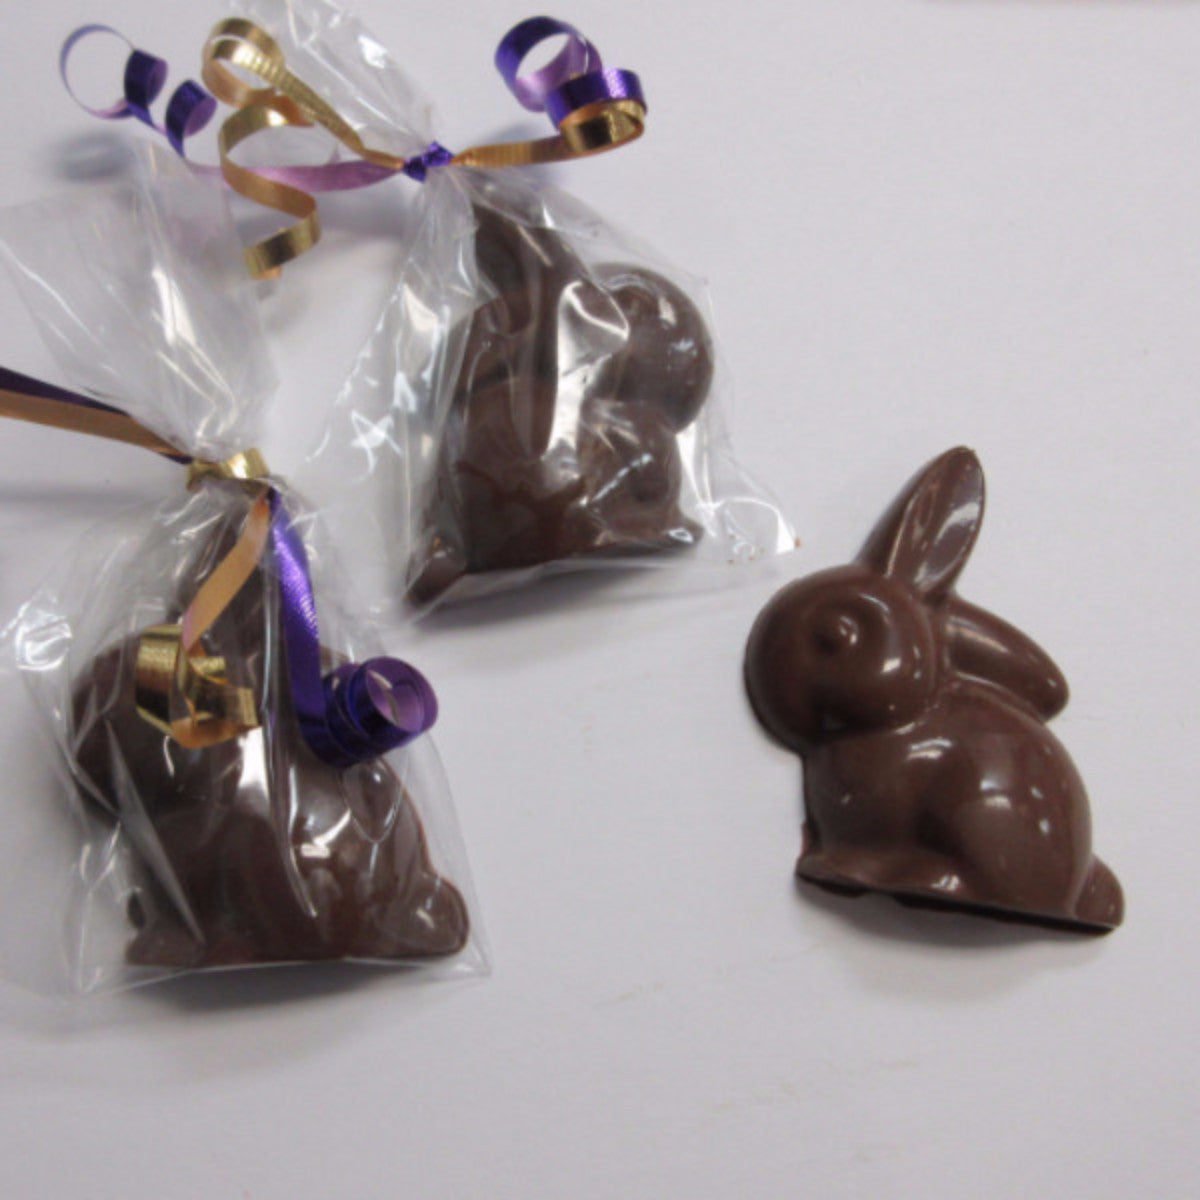 Small Chocolate Bunny,Safari Cake Boutique in Kingston sells chocolate lollipops for Easter. We are a Nut free & Peanut Free Bakery. Available in White, dark or mild chocolate. Call us today 613.384.5100